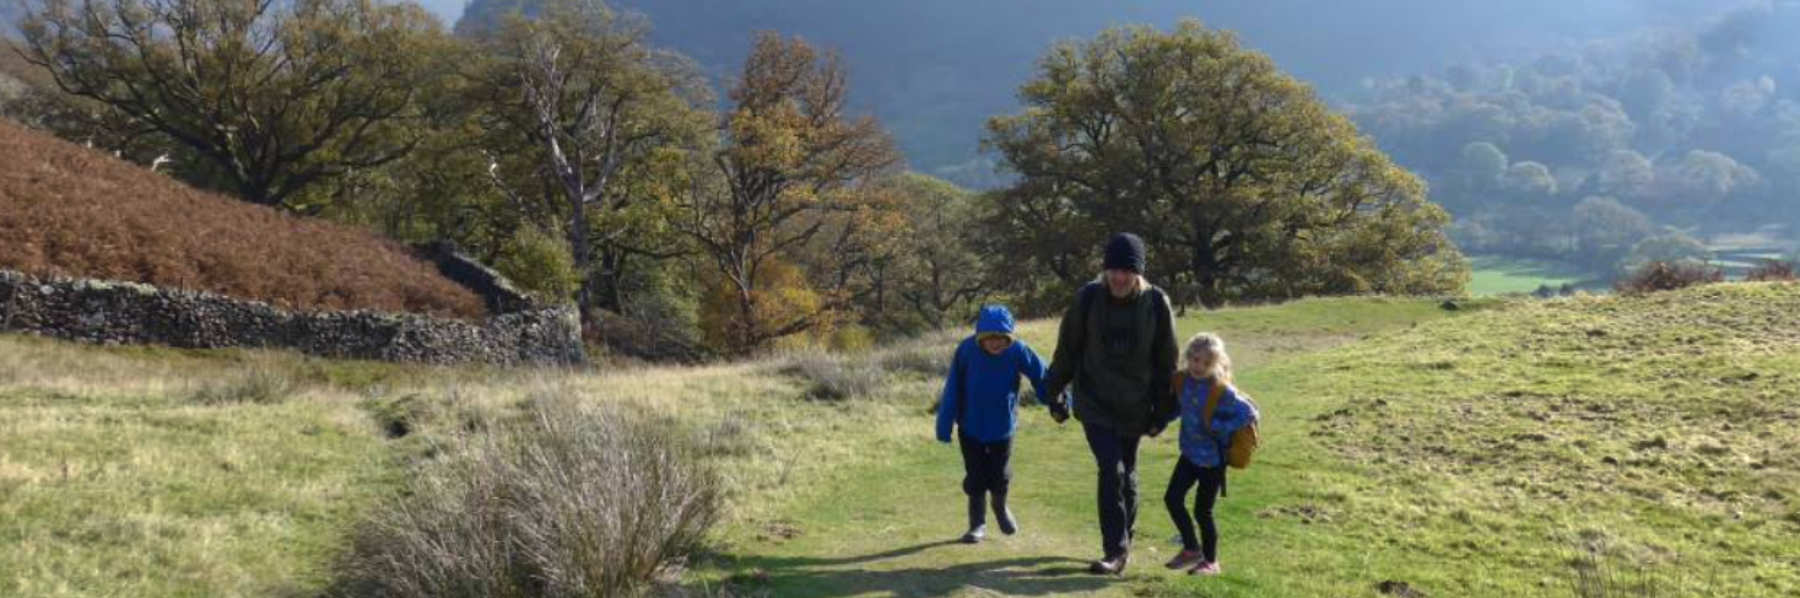 father_and_two_children_walking_up_hill